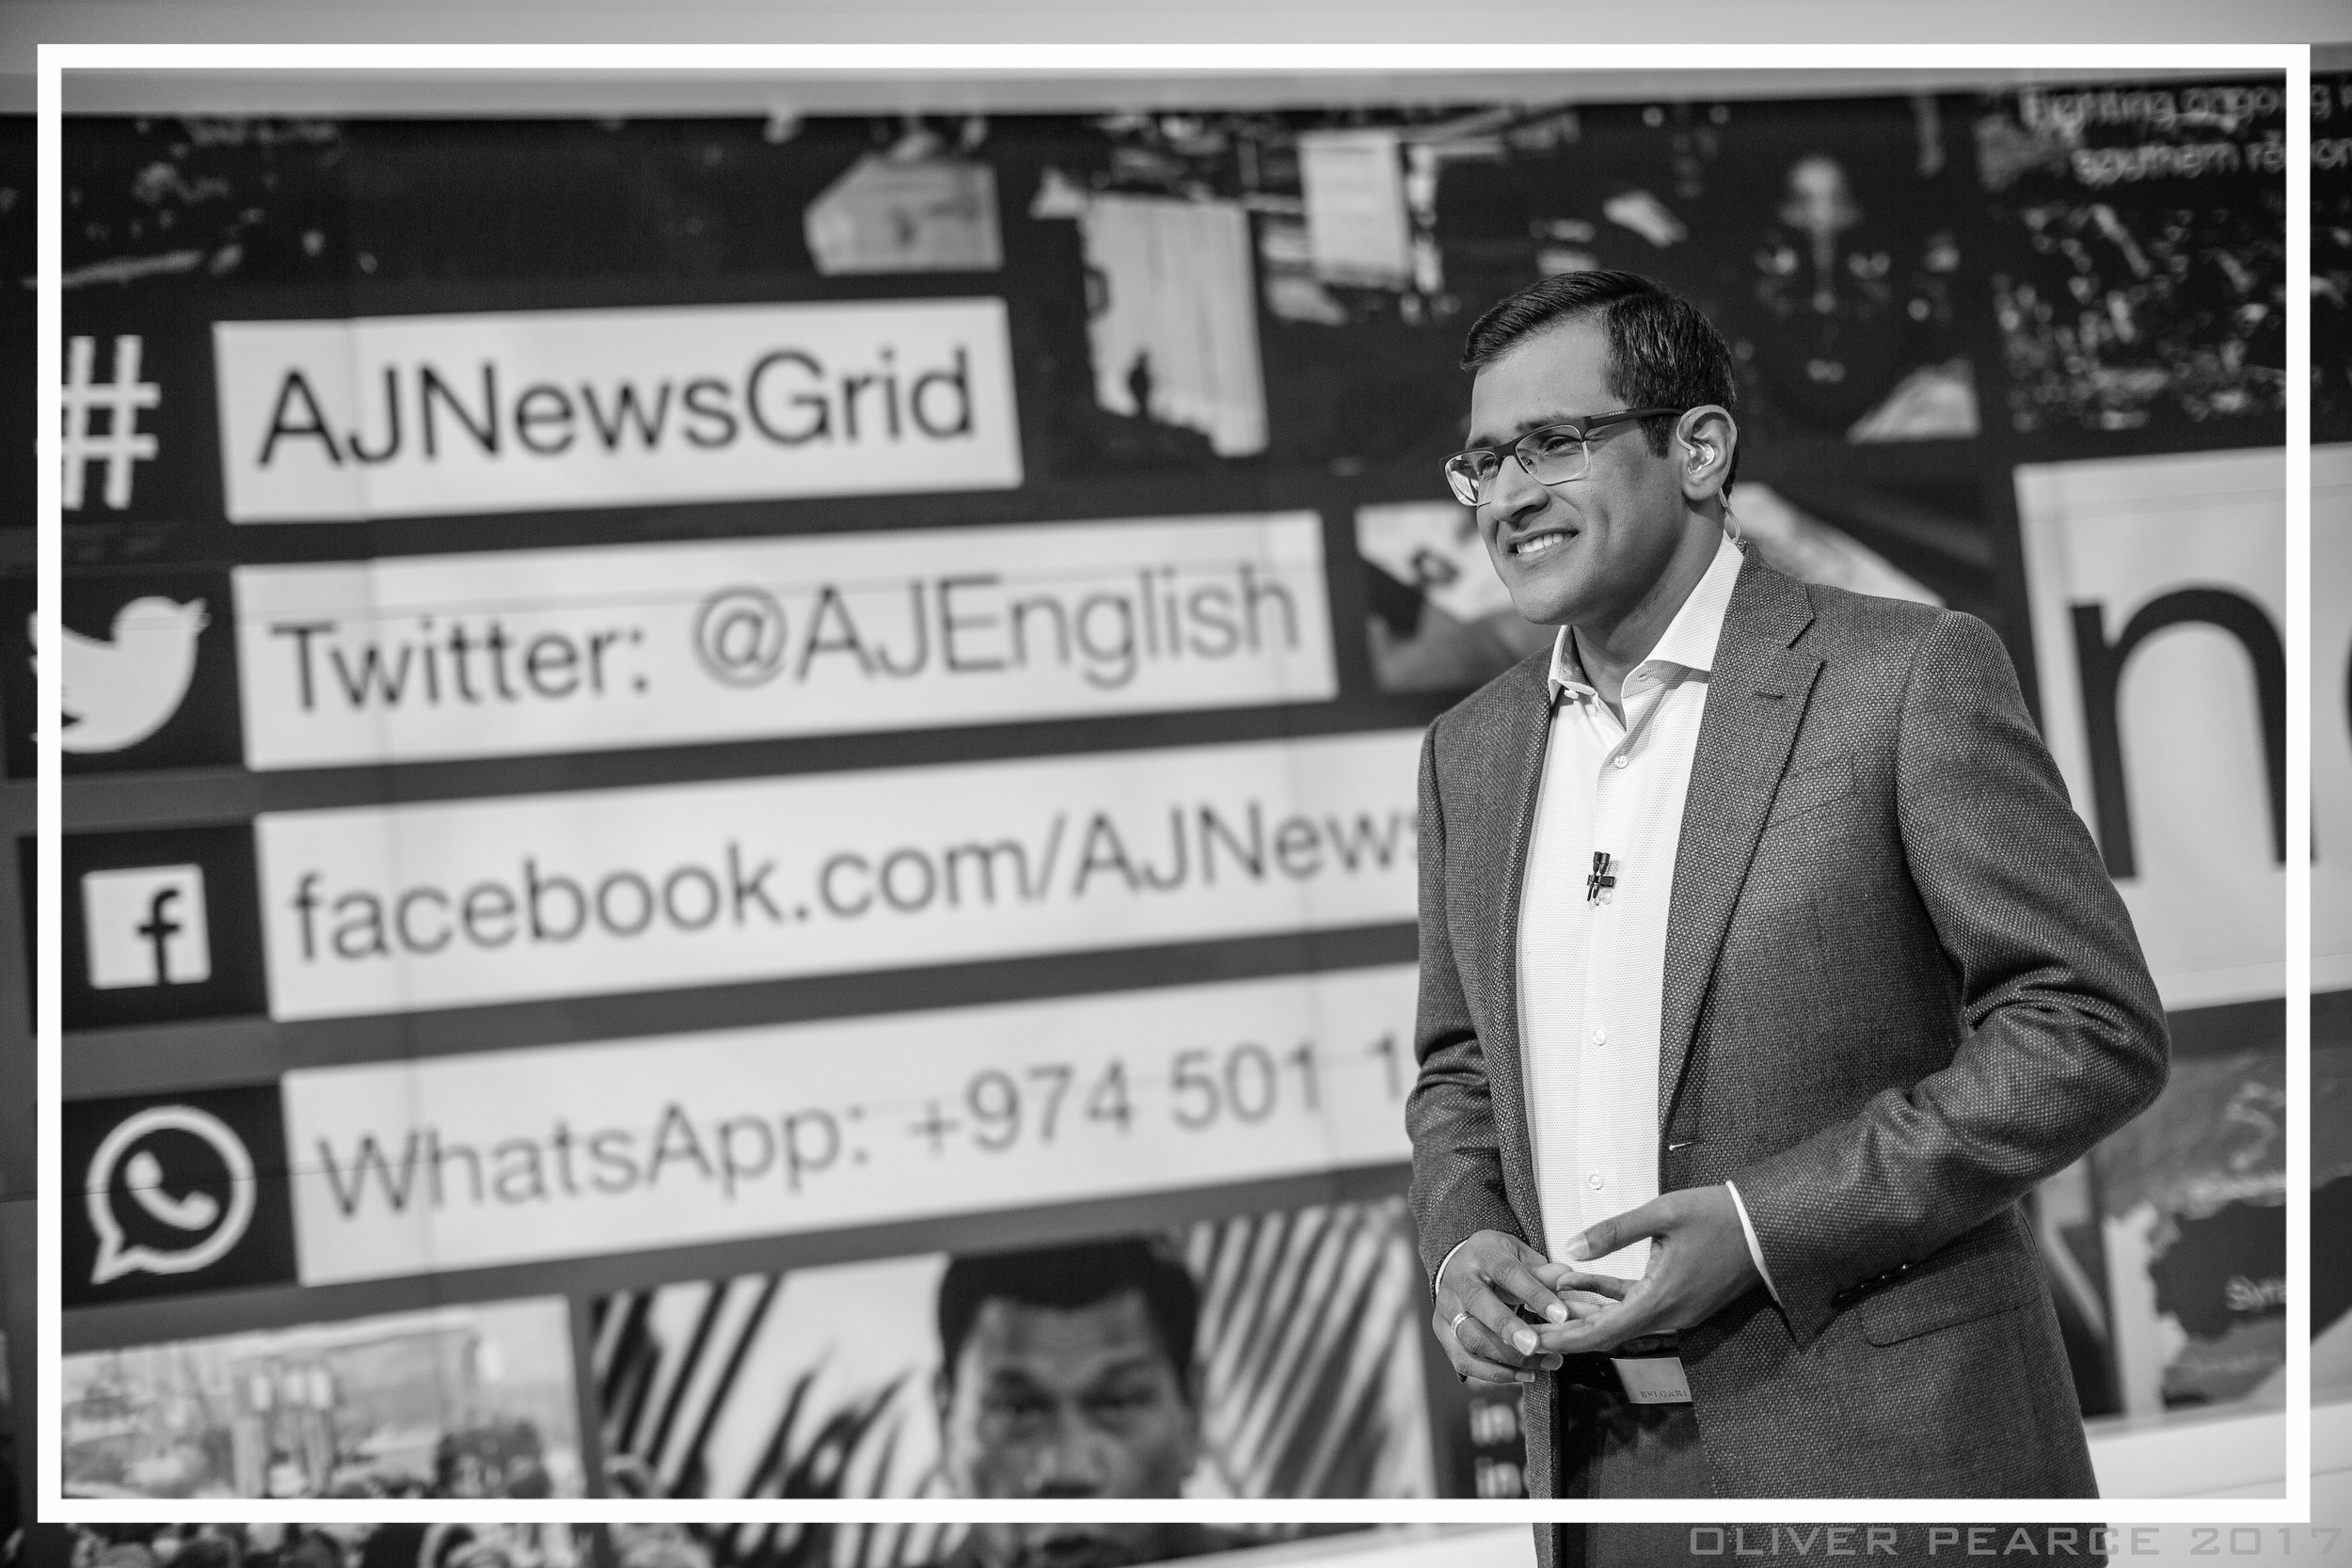 Presenting  newsgrid  from Studio 14 at Al Jazeera (Doha, 2017)